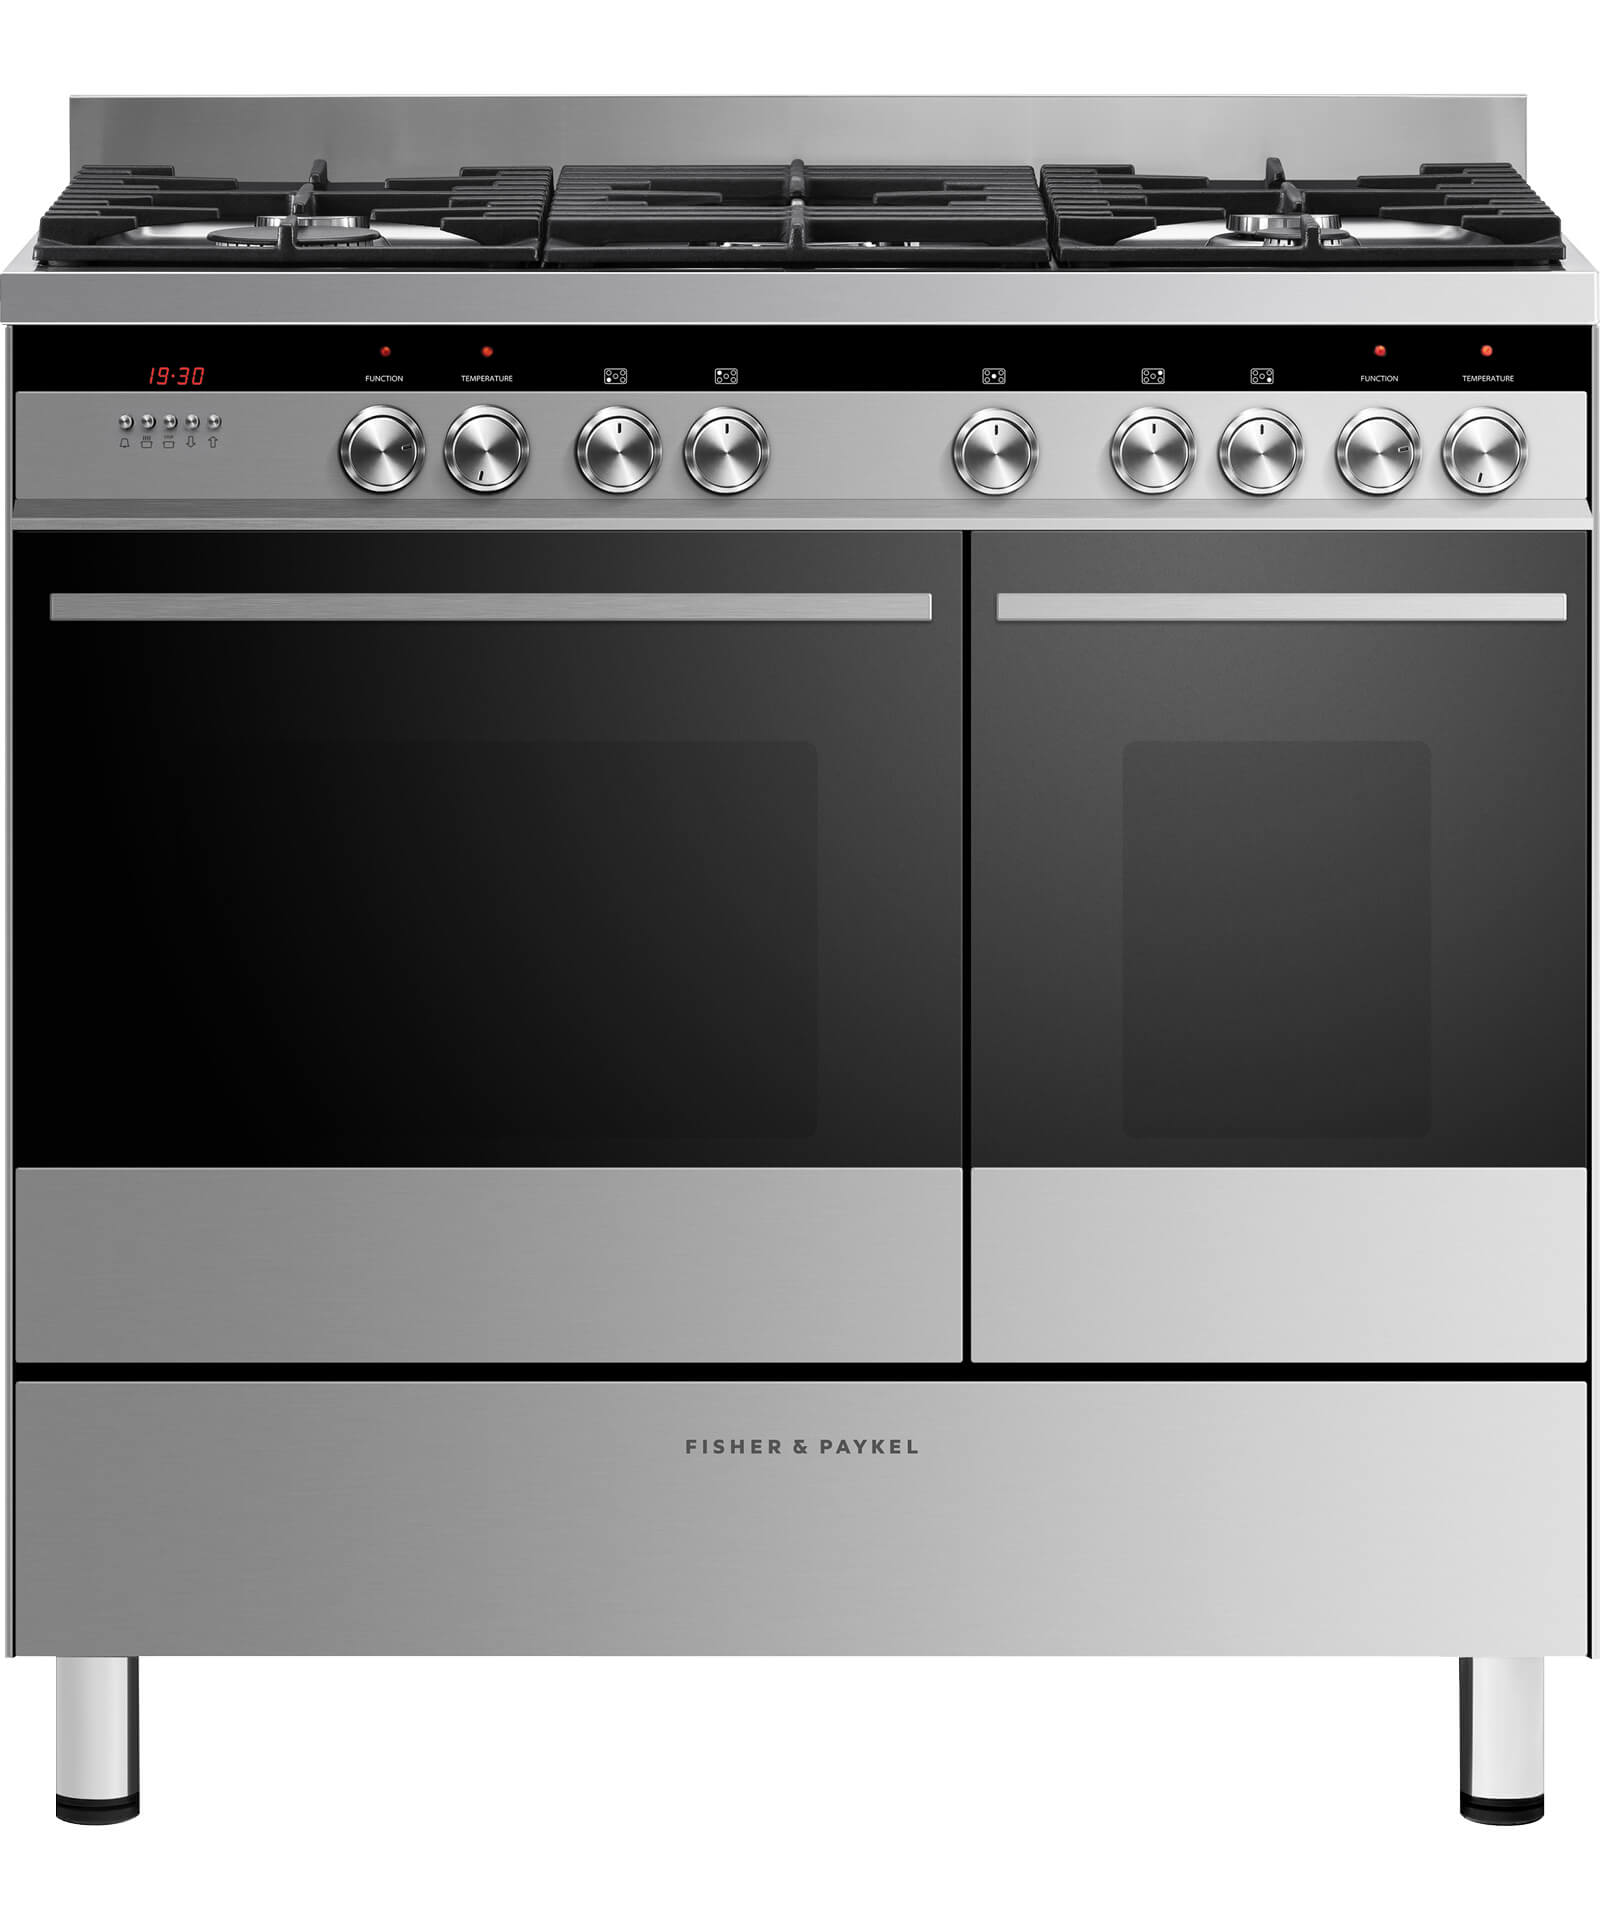 OR90L7DBGFX1 - 90cm Freestanding Dual Fuel Cooker - 81563